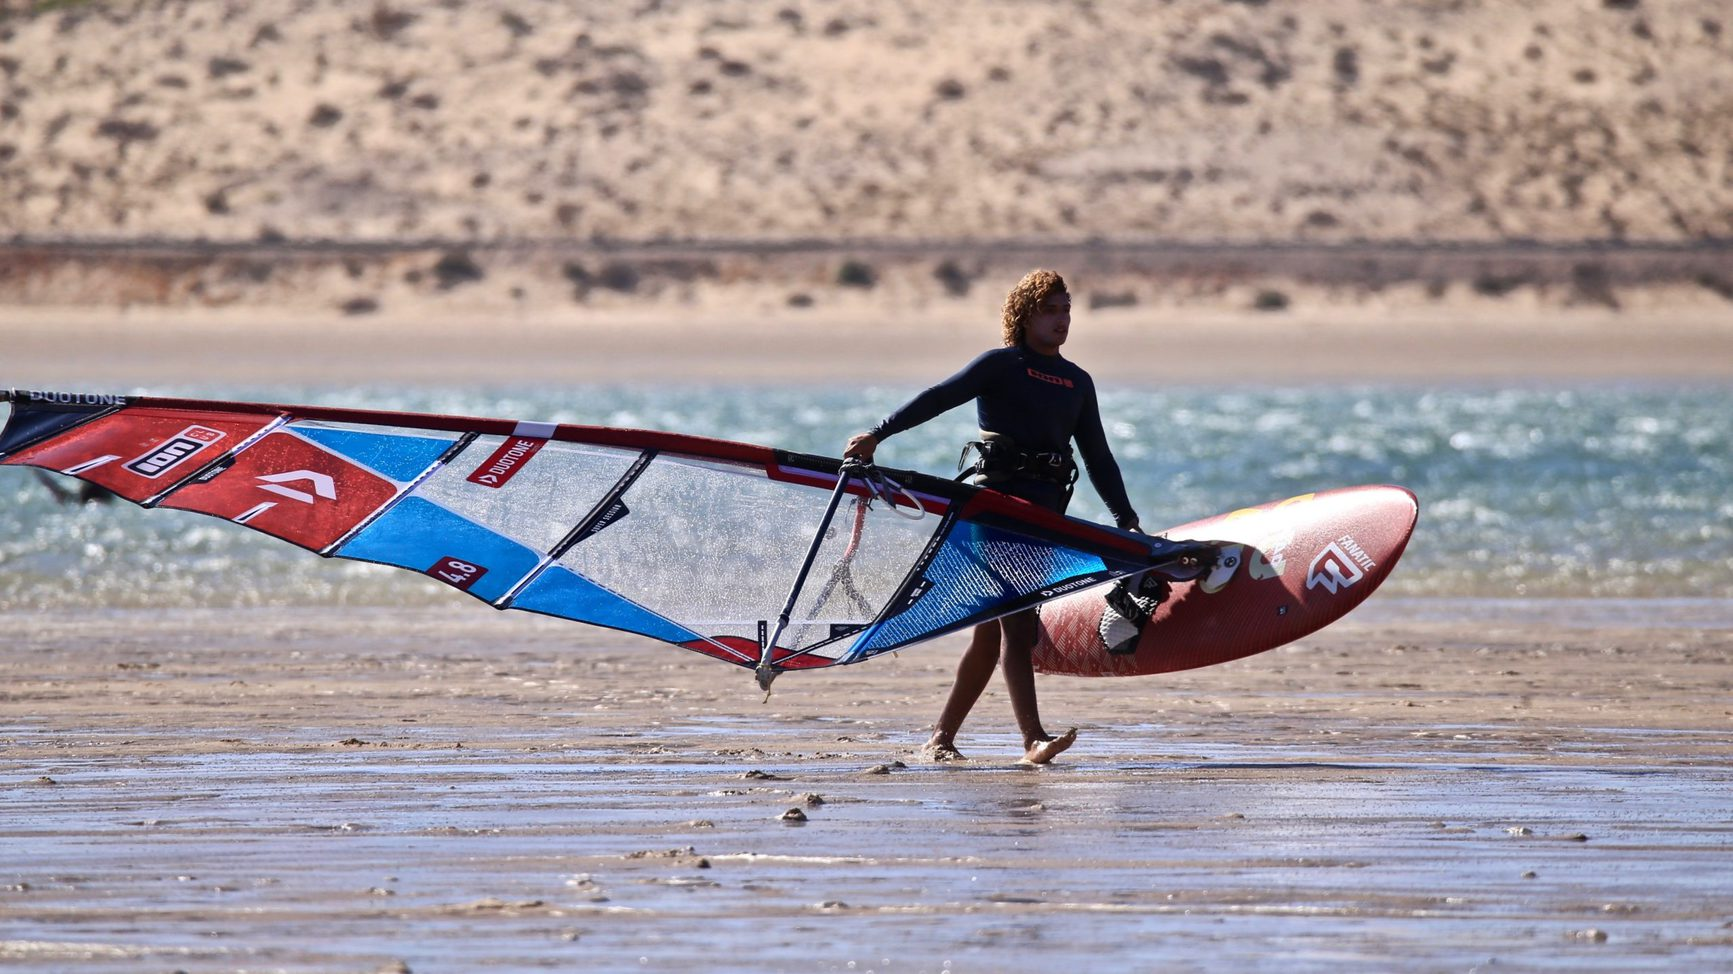 Wind surf on beach dakhla